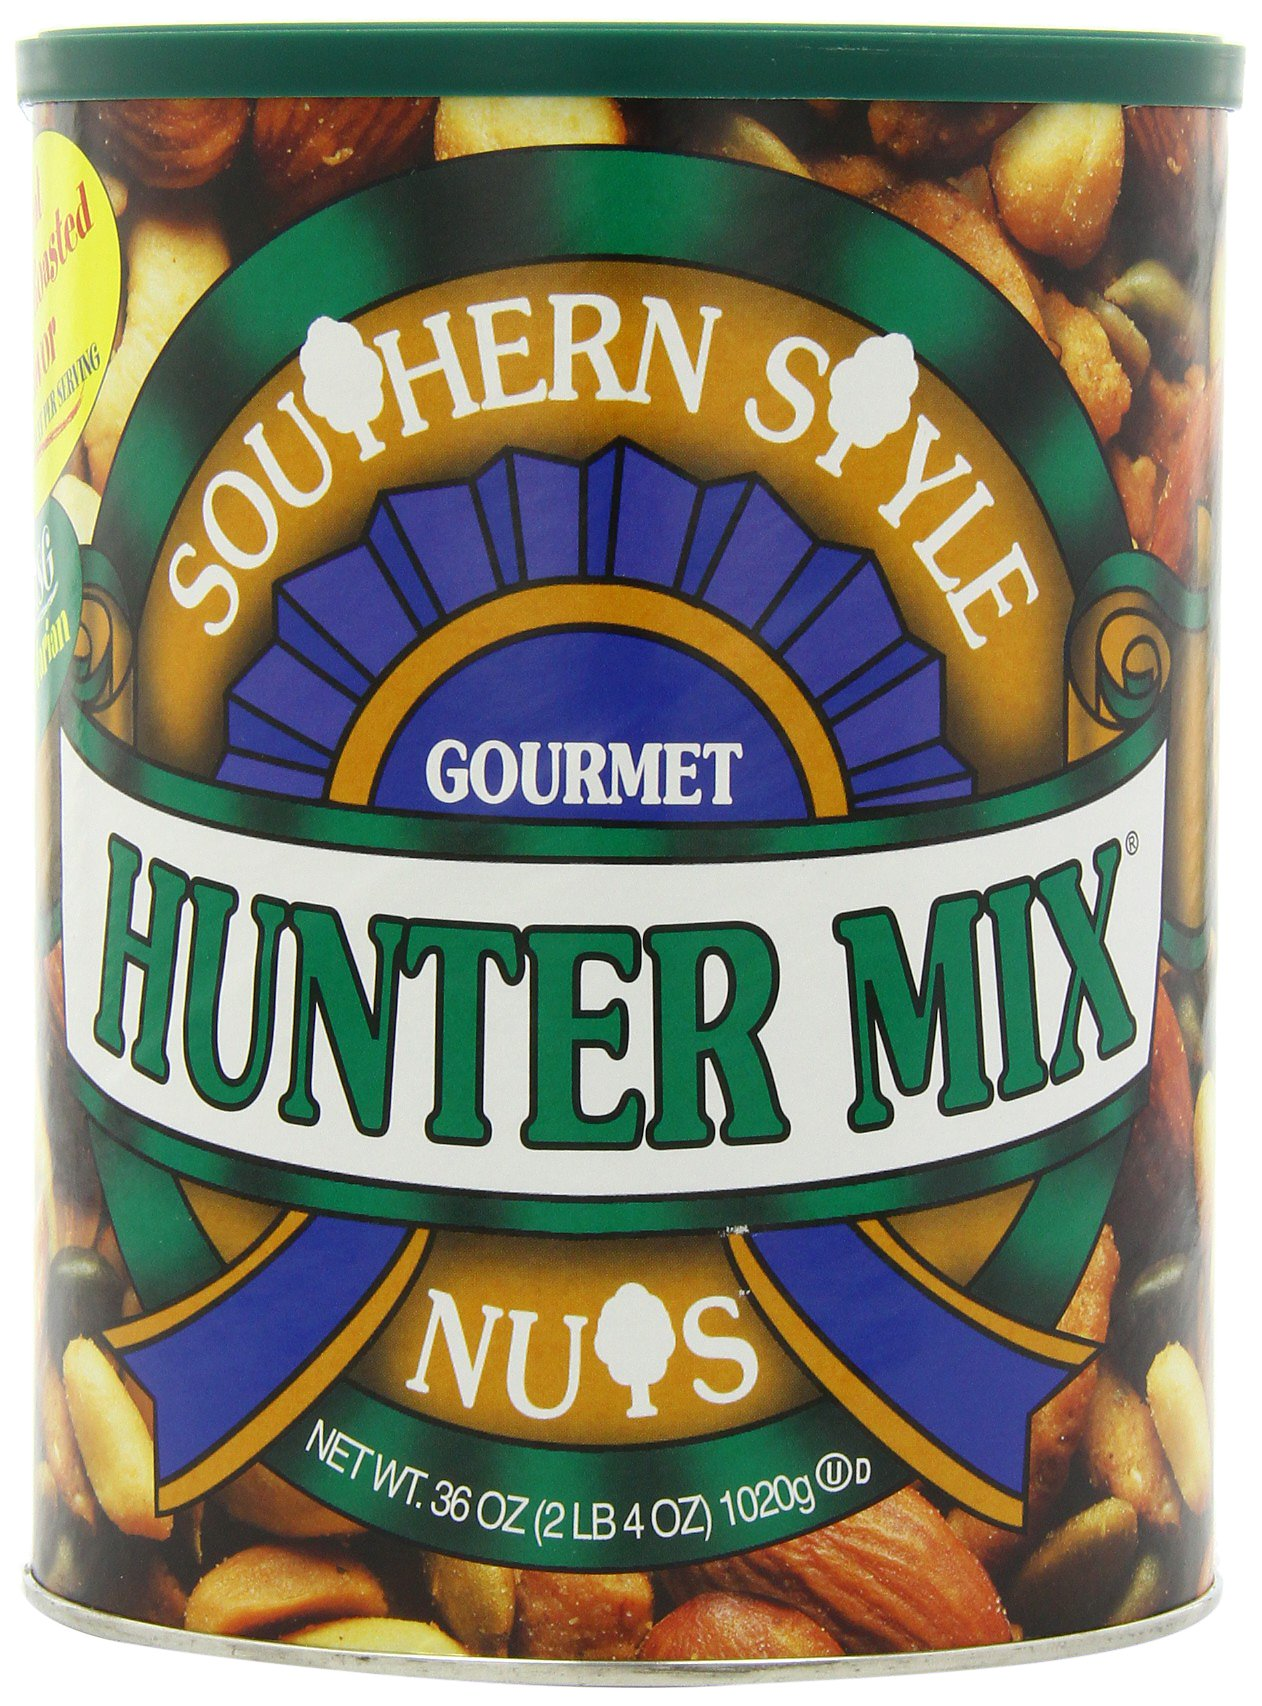 SOUTHERN STYLE NUTS Gourmet Hunter Mix, 36 oz Canister